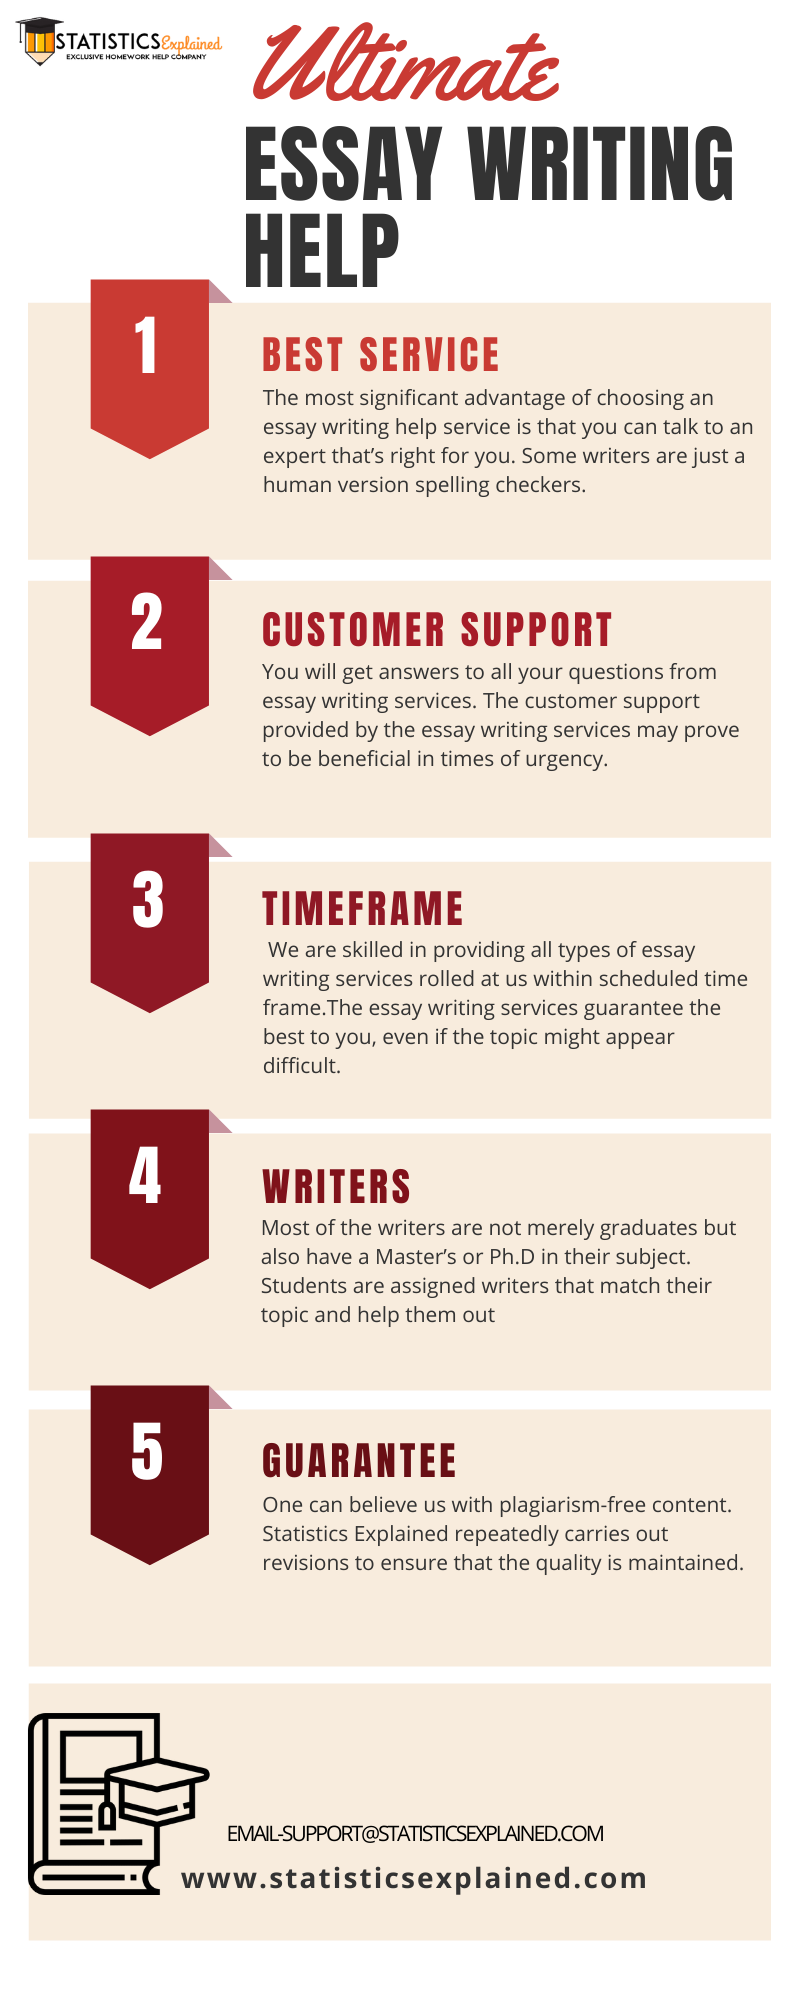 More on thesis proposal writing service